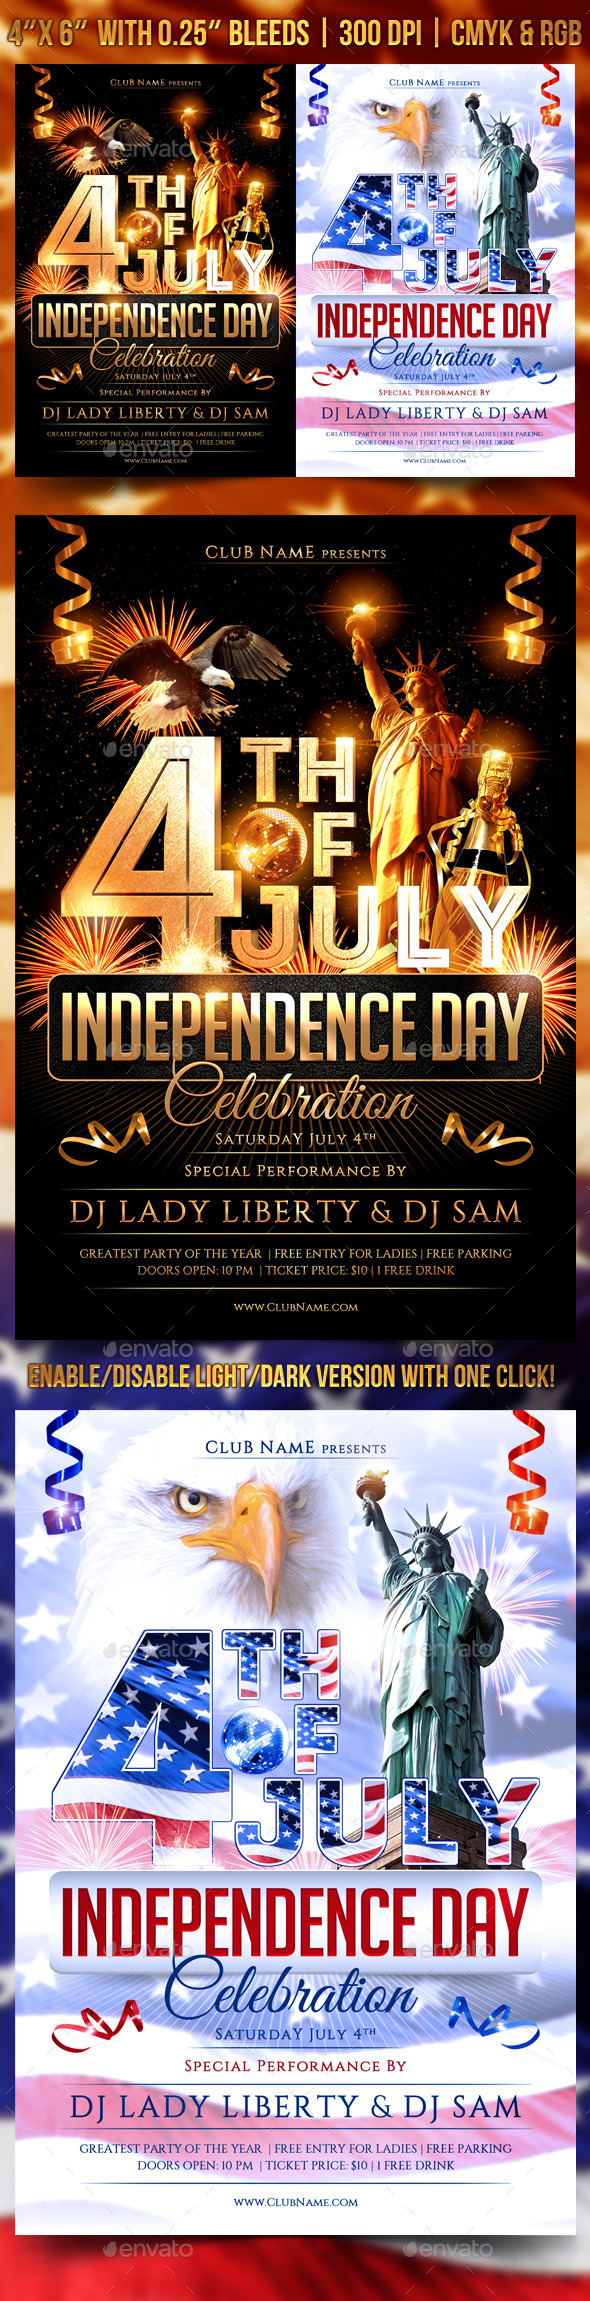 July 4th Independence Day Flyer - Clubs & Parties Events